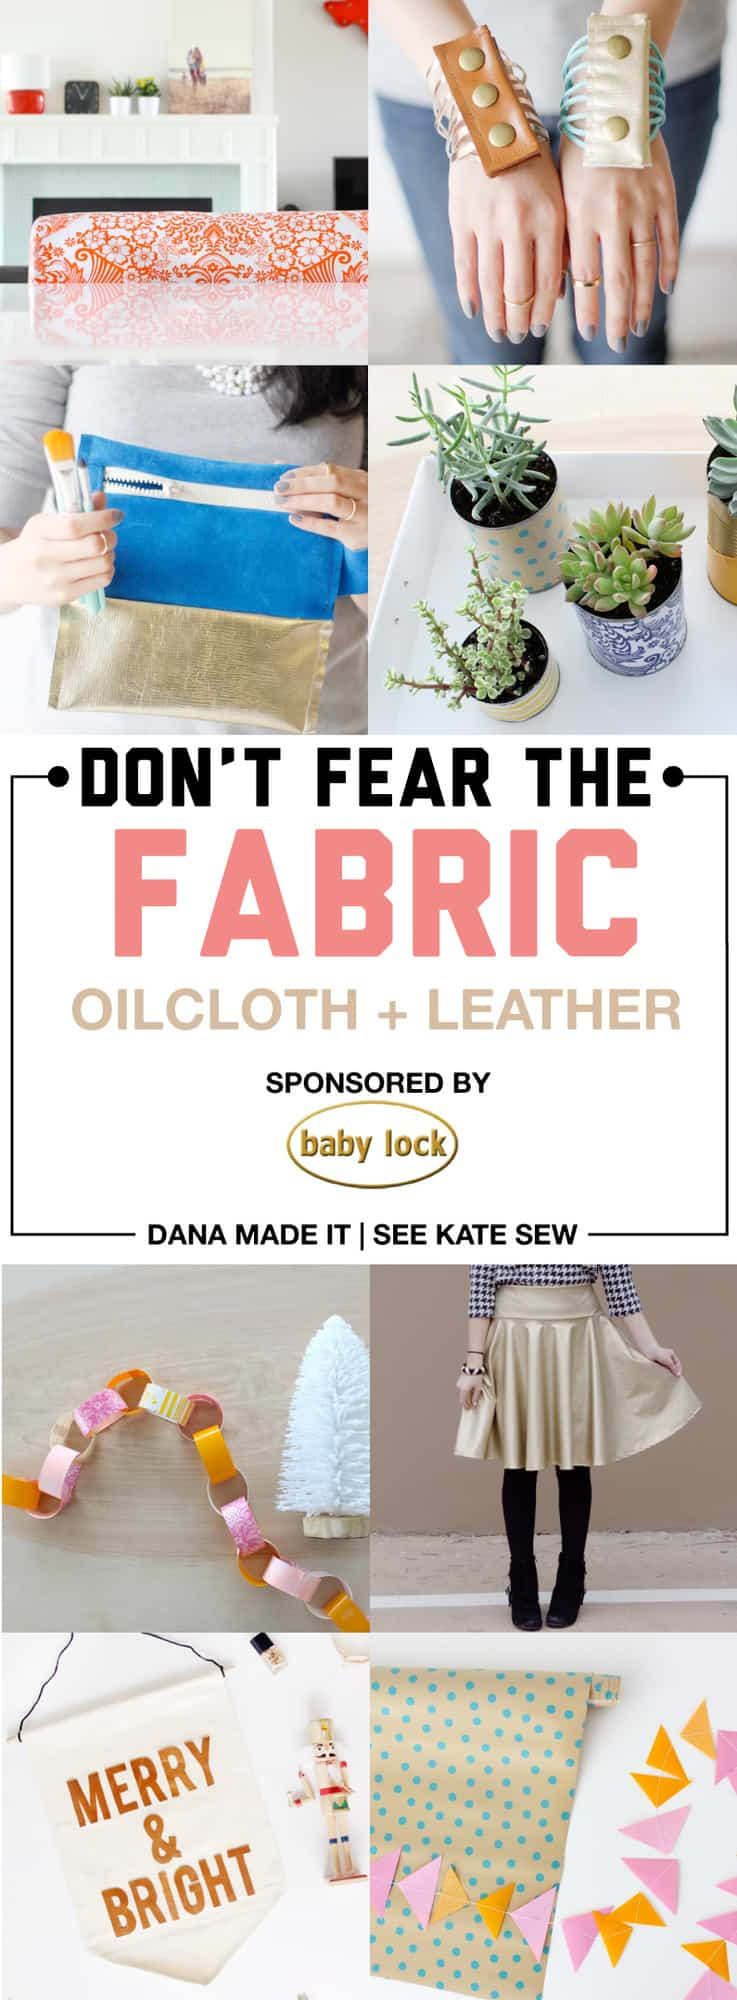 Learn to sew confidently with Oilcloth and Leather with this great series from MADE and See Kate Sew! Over 10 simple and useful projects to get you started!